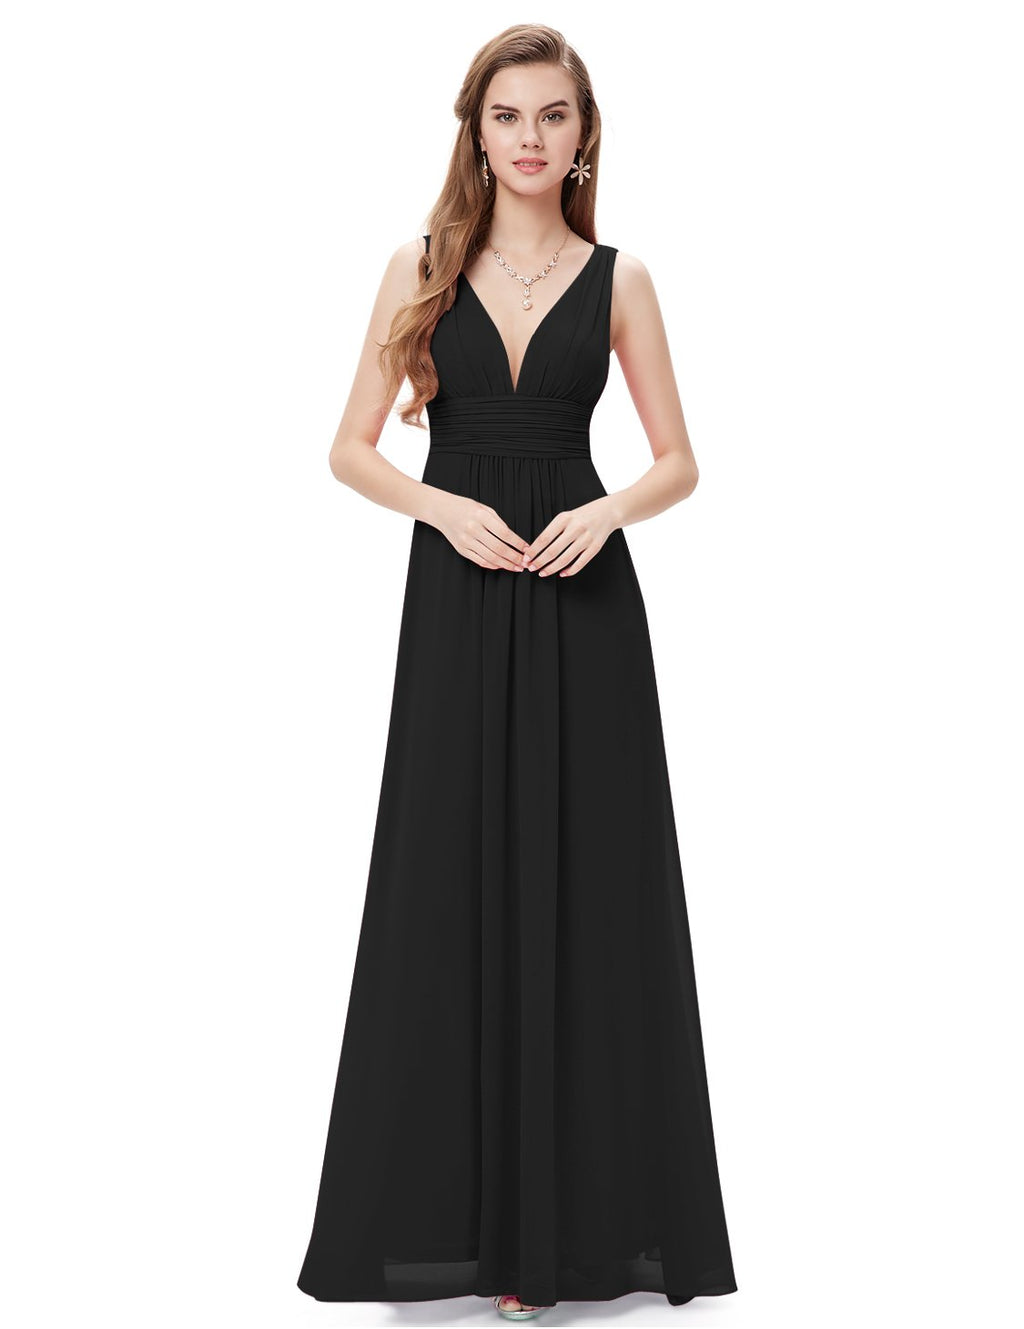 Chiffon Elegant Evening Gown Black